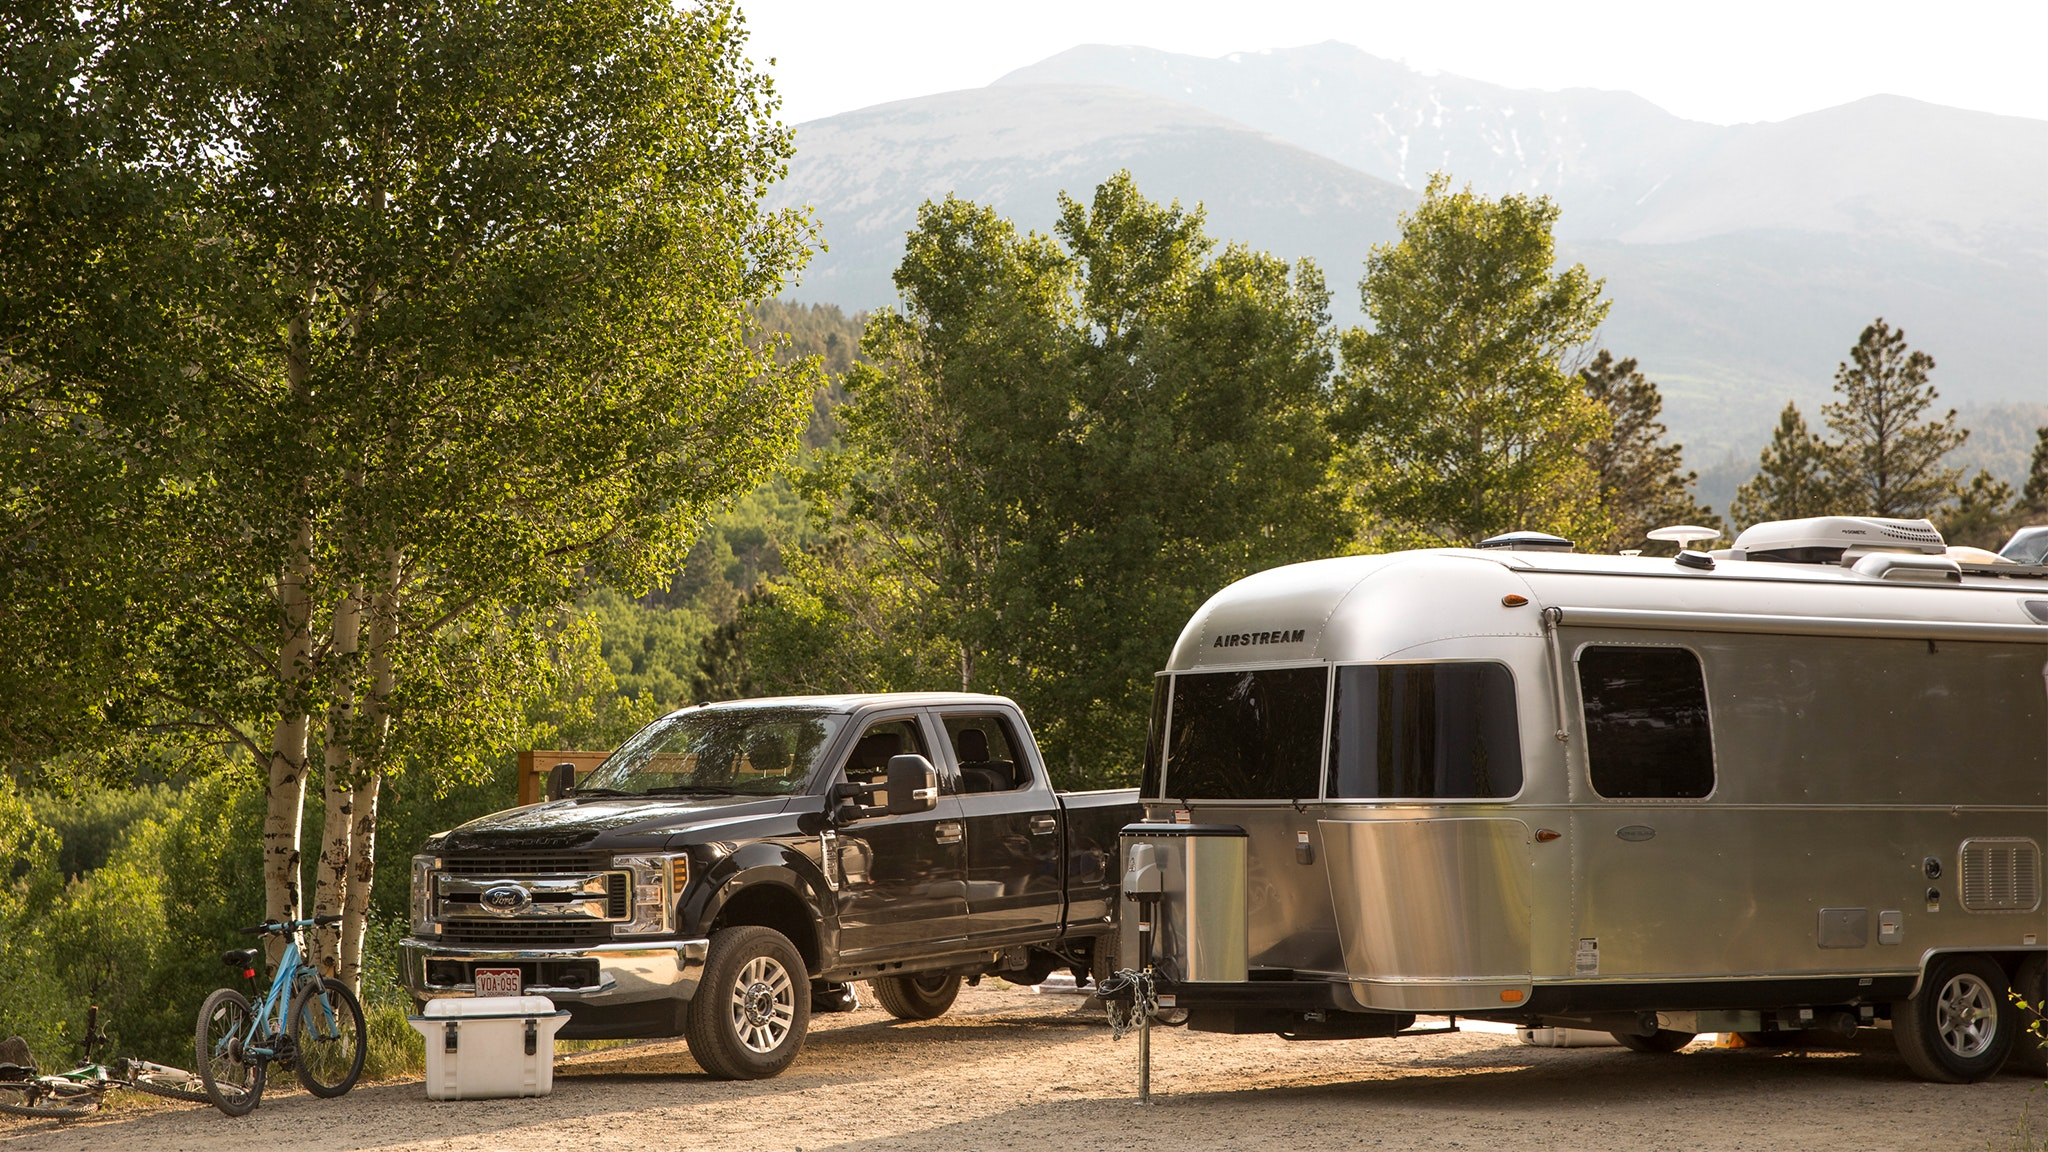 Airstream-List-of-Essential-Travel-Items-from-Airstreamers-Desktop-Feature